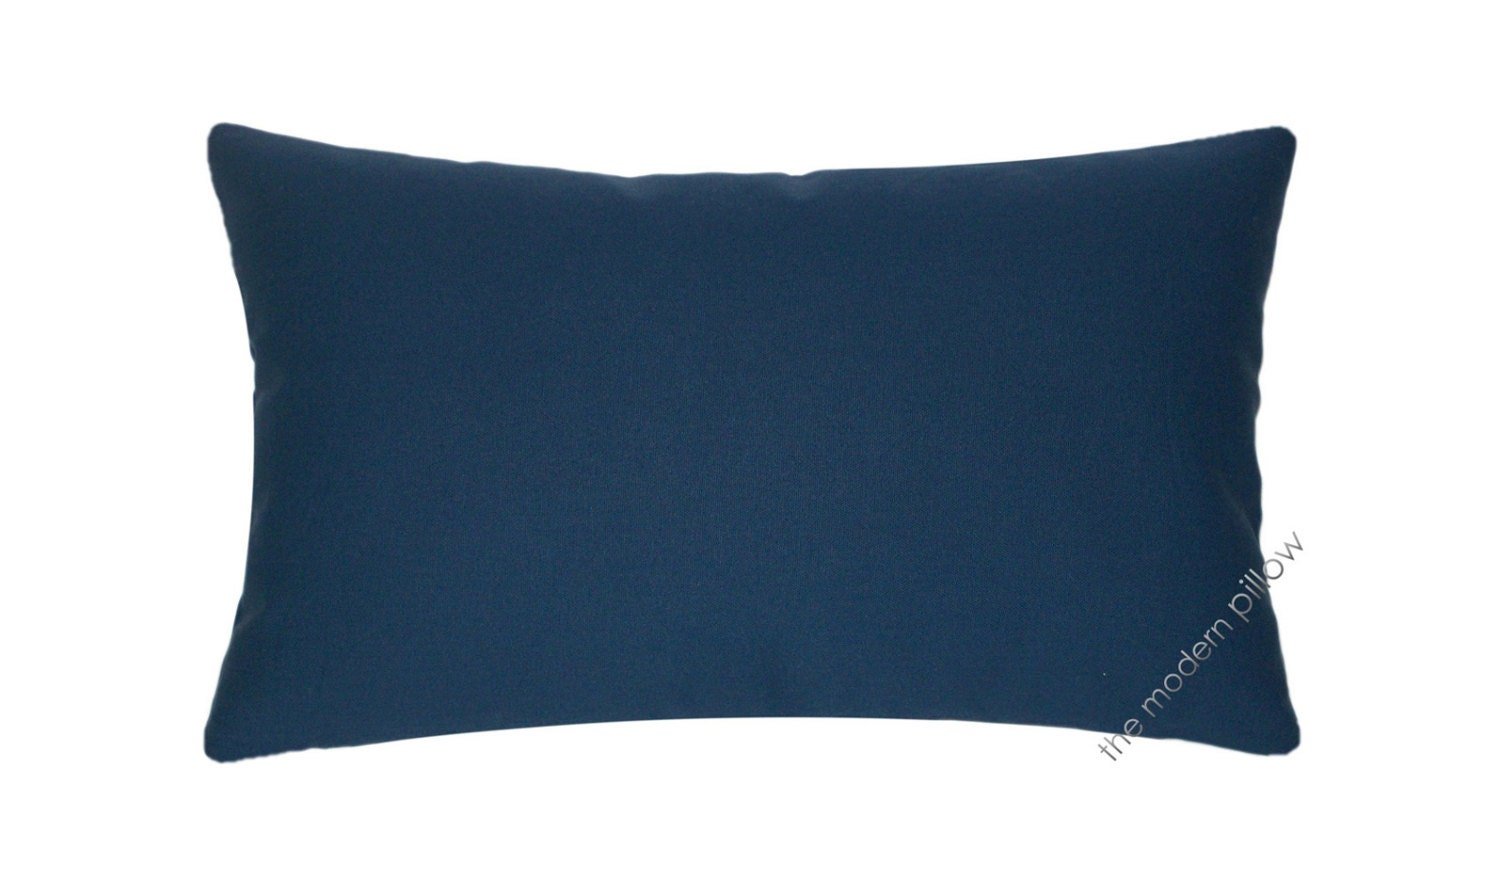 Navy Blue Solid Decorative Throw Pillow Cover / Cushion Cover